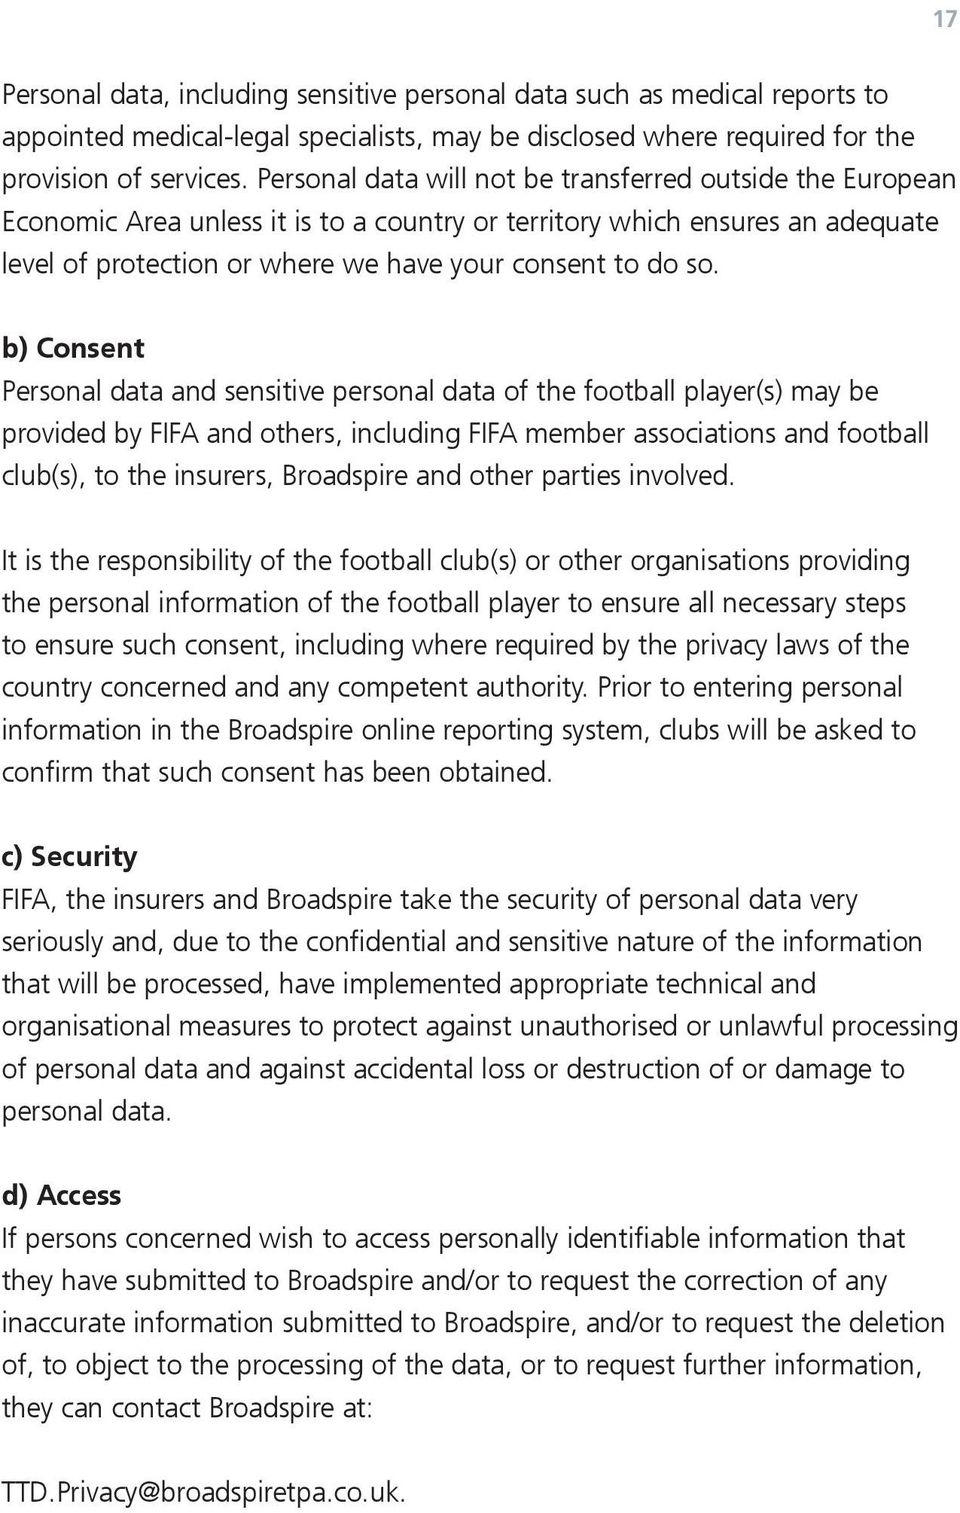 b) Consent Personal data sensitive personal data football player(s) may be provided by FIFA ors, including FIFA member associations football club(s), to insurers, Broadspire or parties involved.